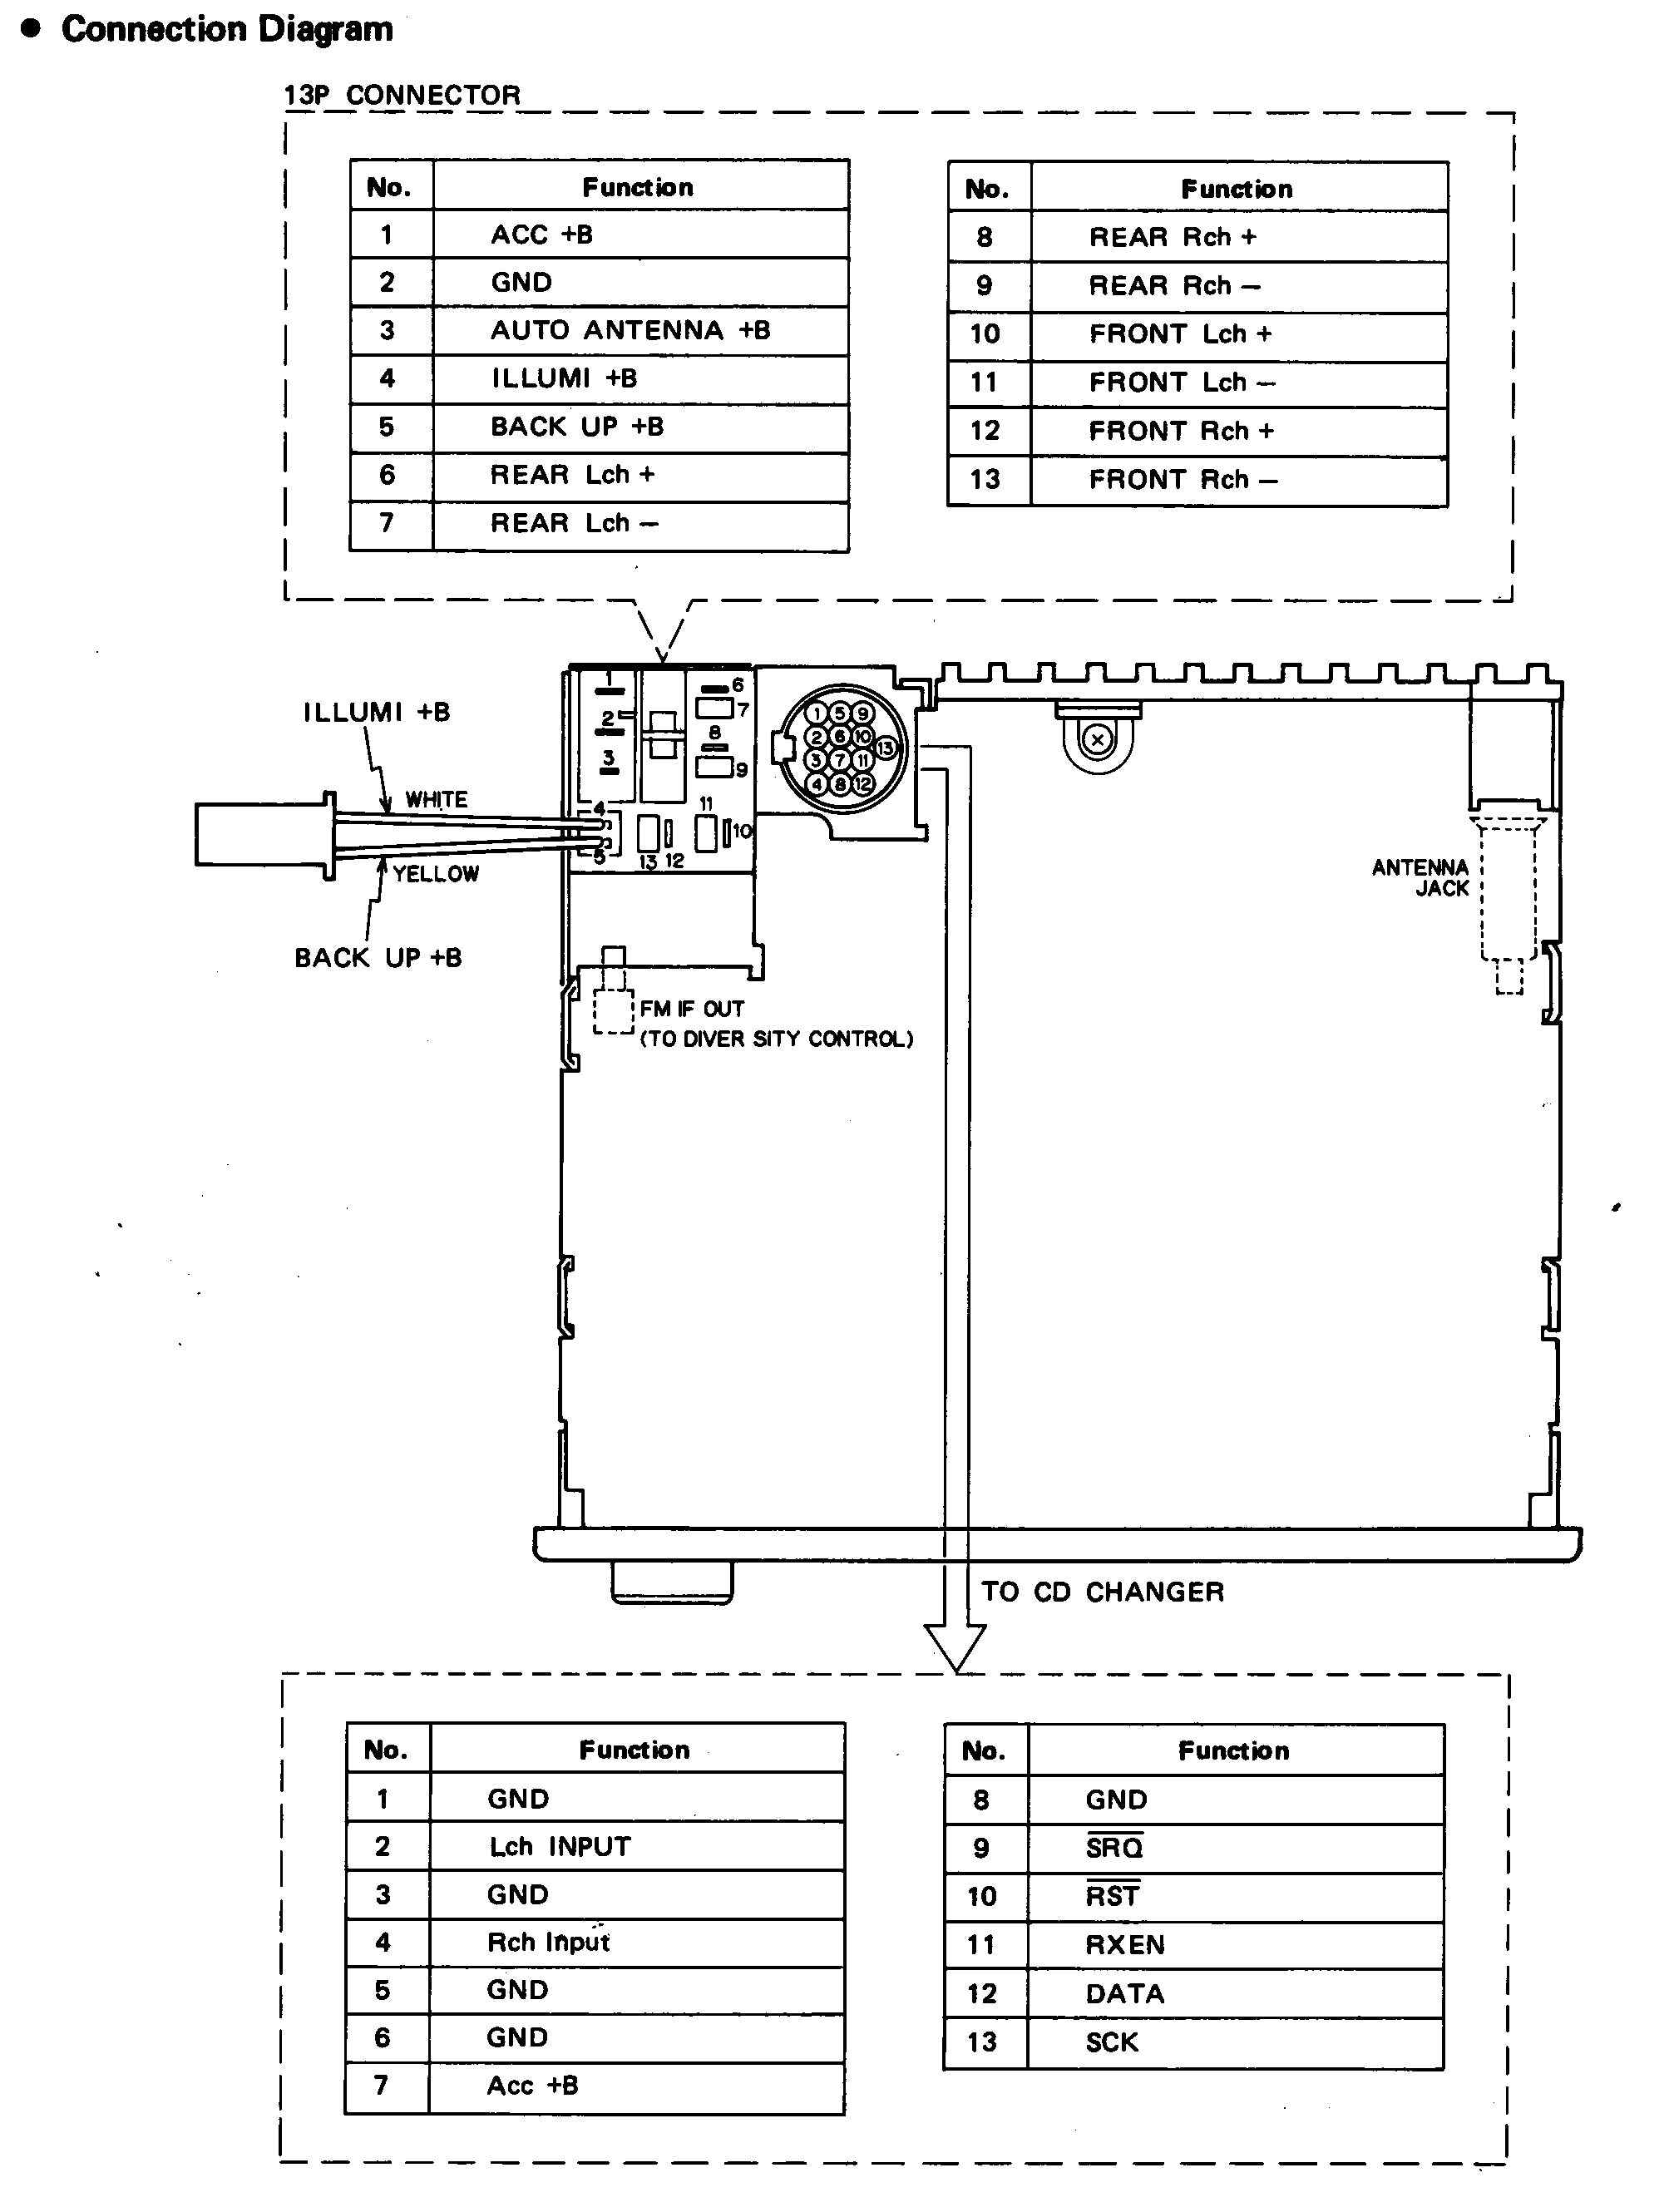 dodge nitro stereo wiring diagram schematics and wiring diagrams dodge car radio stereo audio wiring diagram autoradio connector